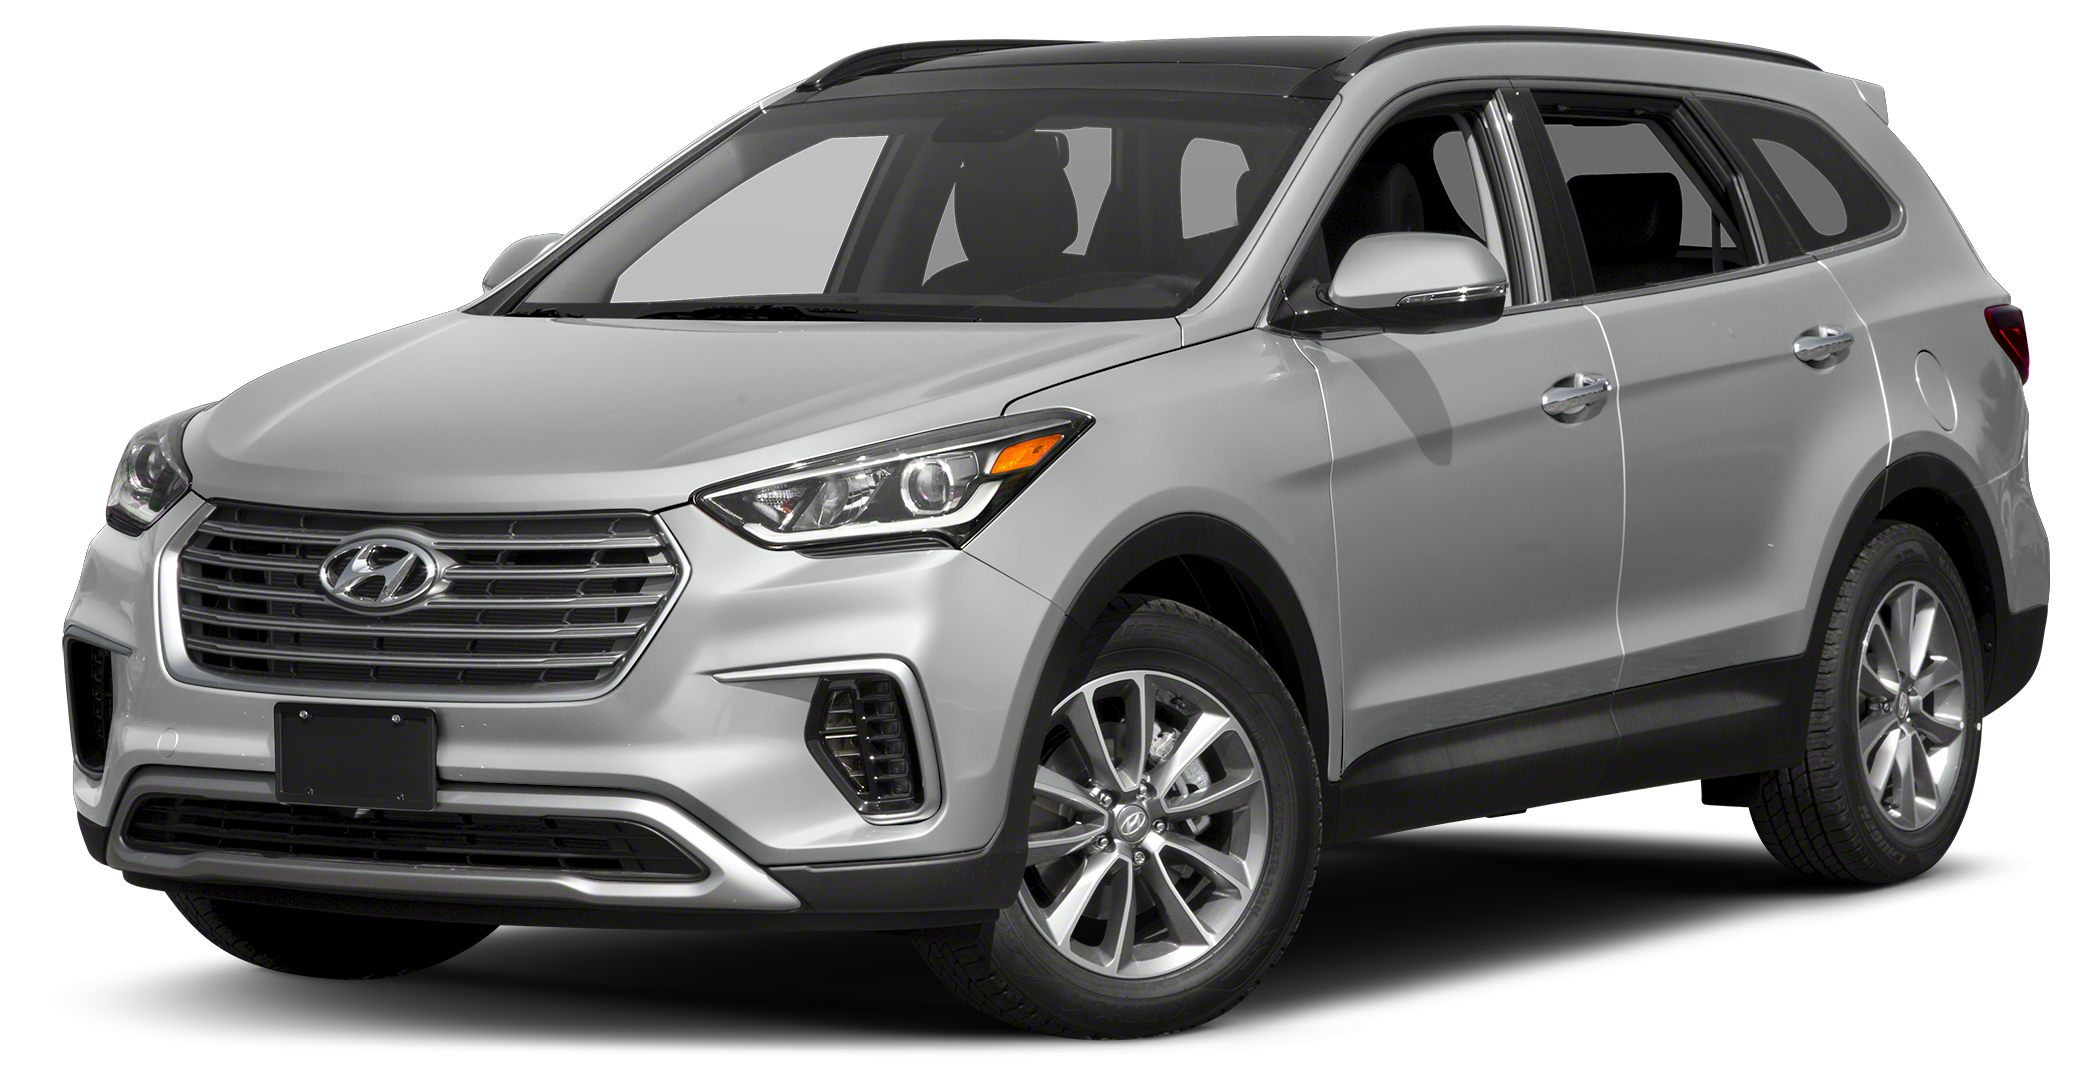 2017 Hyundai Santa Fe SE Recent Arrival gray Cloth WARRANTY FOREVER included at NO EXTRA COS